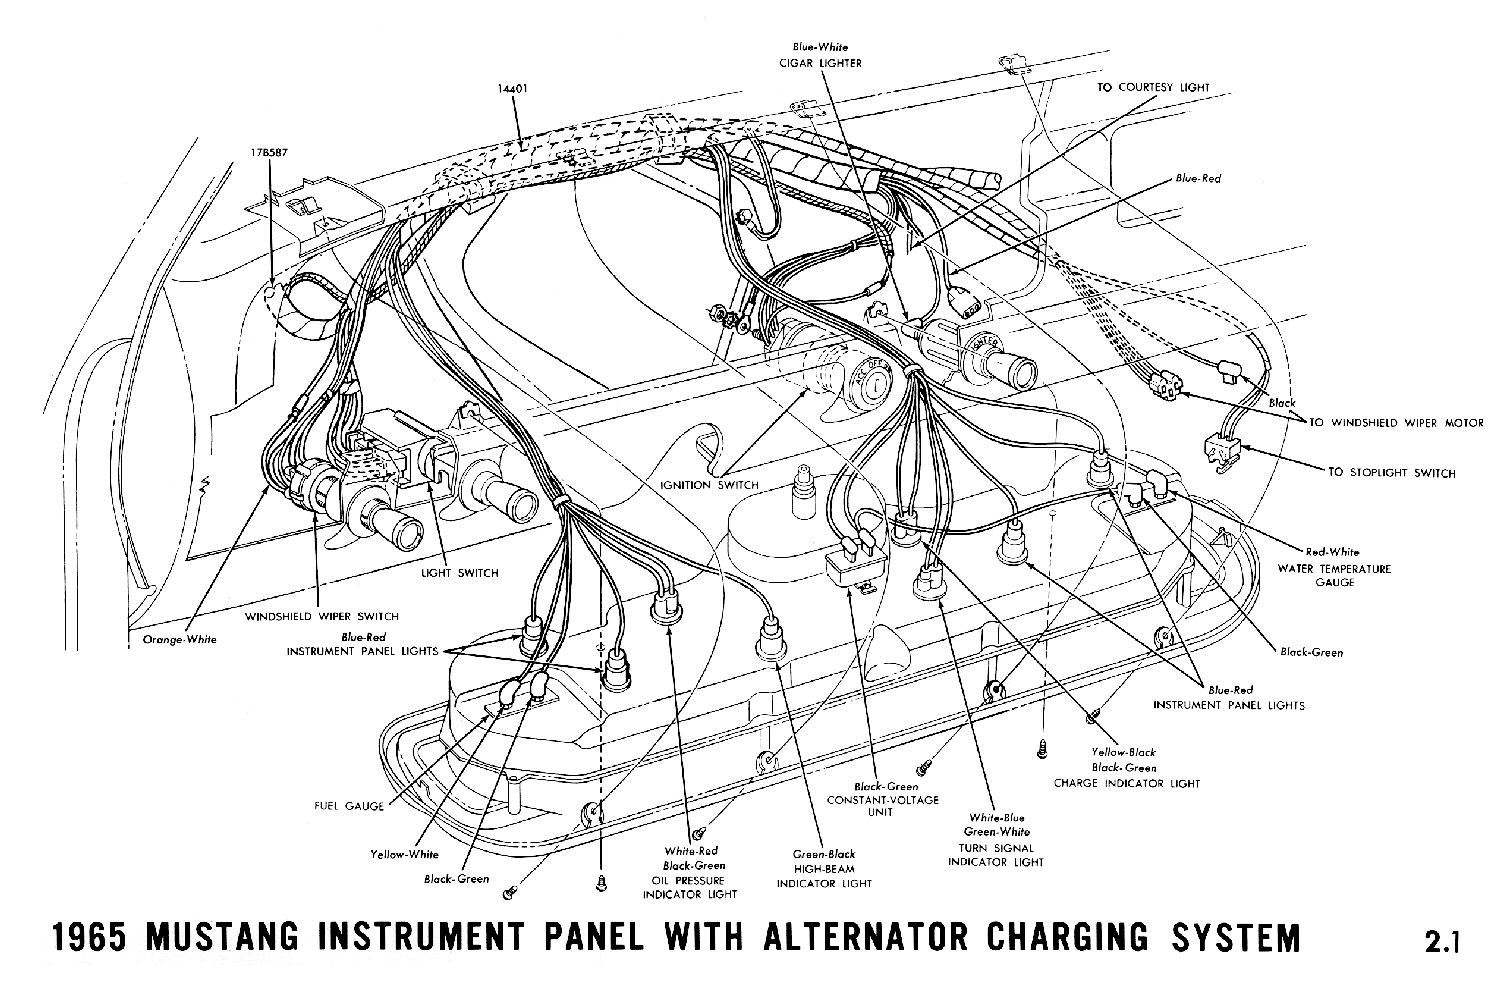 1965 Ford Mustang Wiring Diagram Trusted Schematics Wiper Diagrams Average Joe Restoration Tail Lights